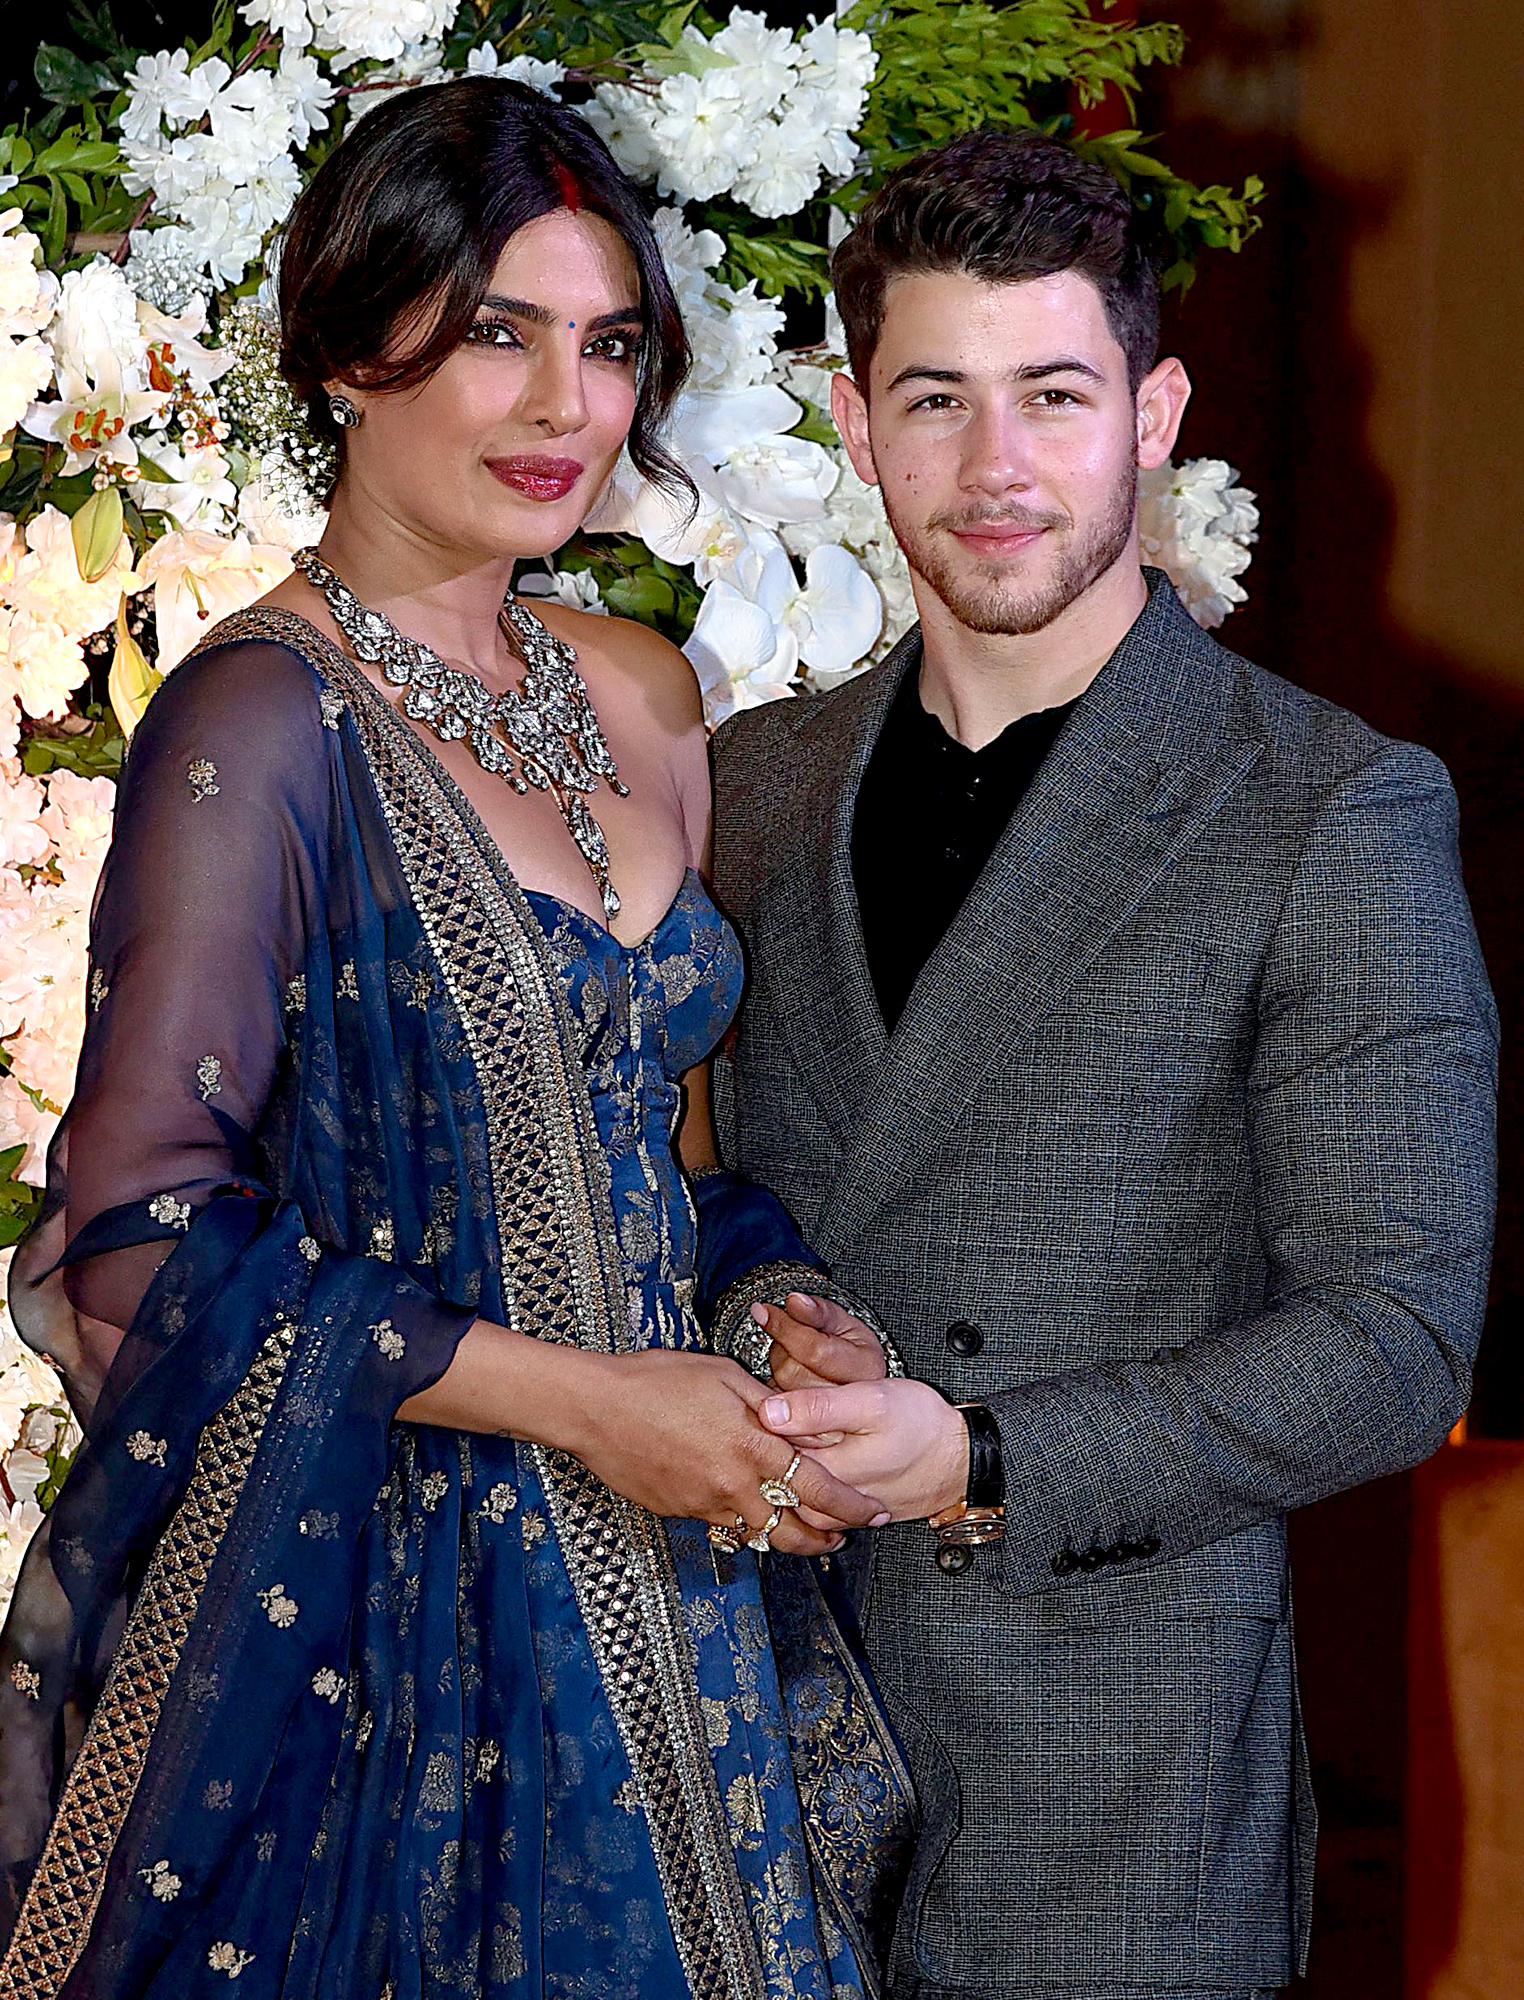 Nick-Jonas-and-Priyanka-Chopra-Mumbai-Wedding-Reception - While Chopra stunned in a royal blue and gold dress and rocked a giant diamond necklace, Jonas looked handsome in a gray suit.